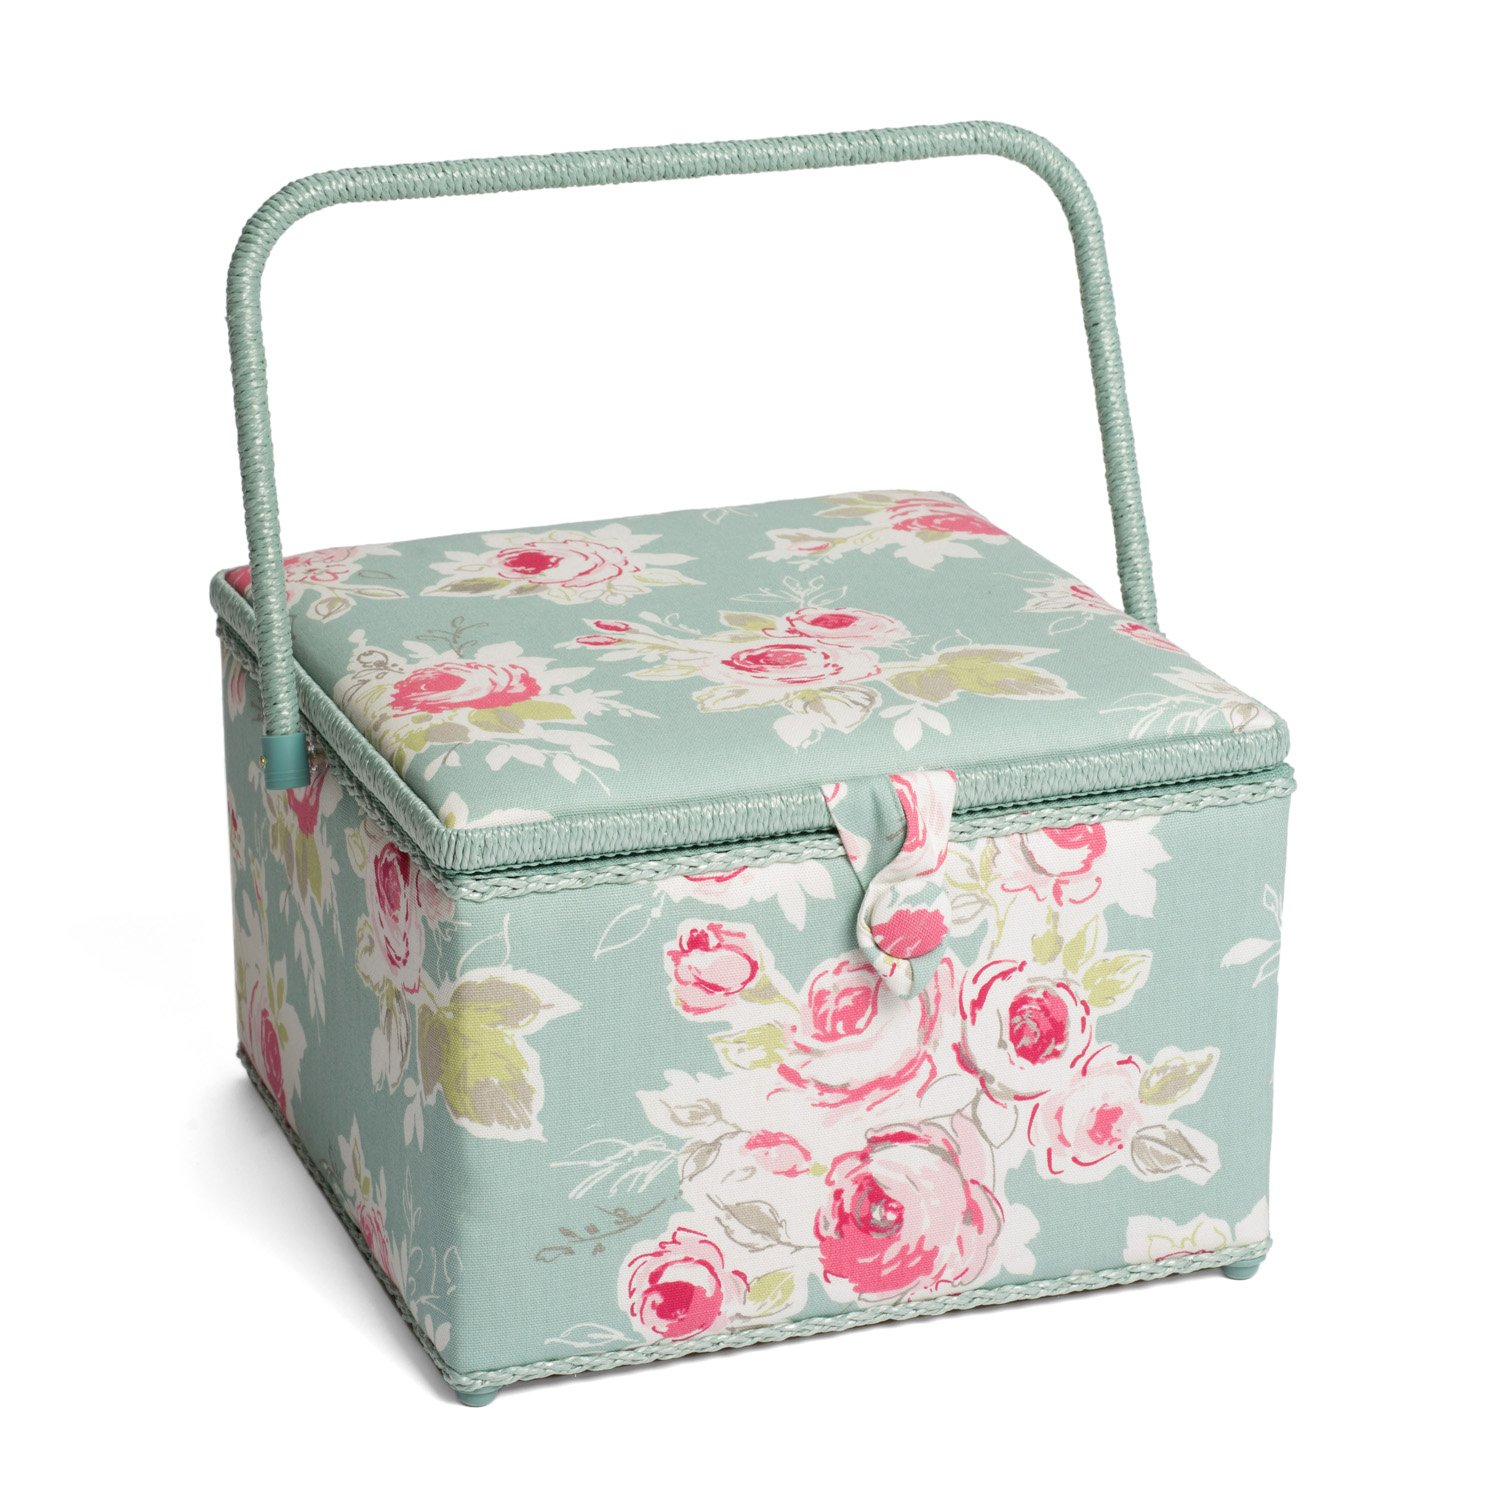 Hobby Gift HGX/242 | Rose Garden Print Large Sewing Basket | 30�x30�x22cm Groves